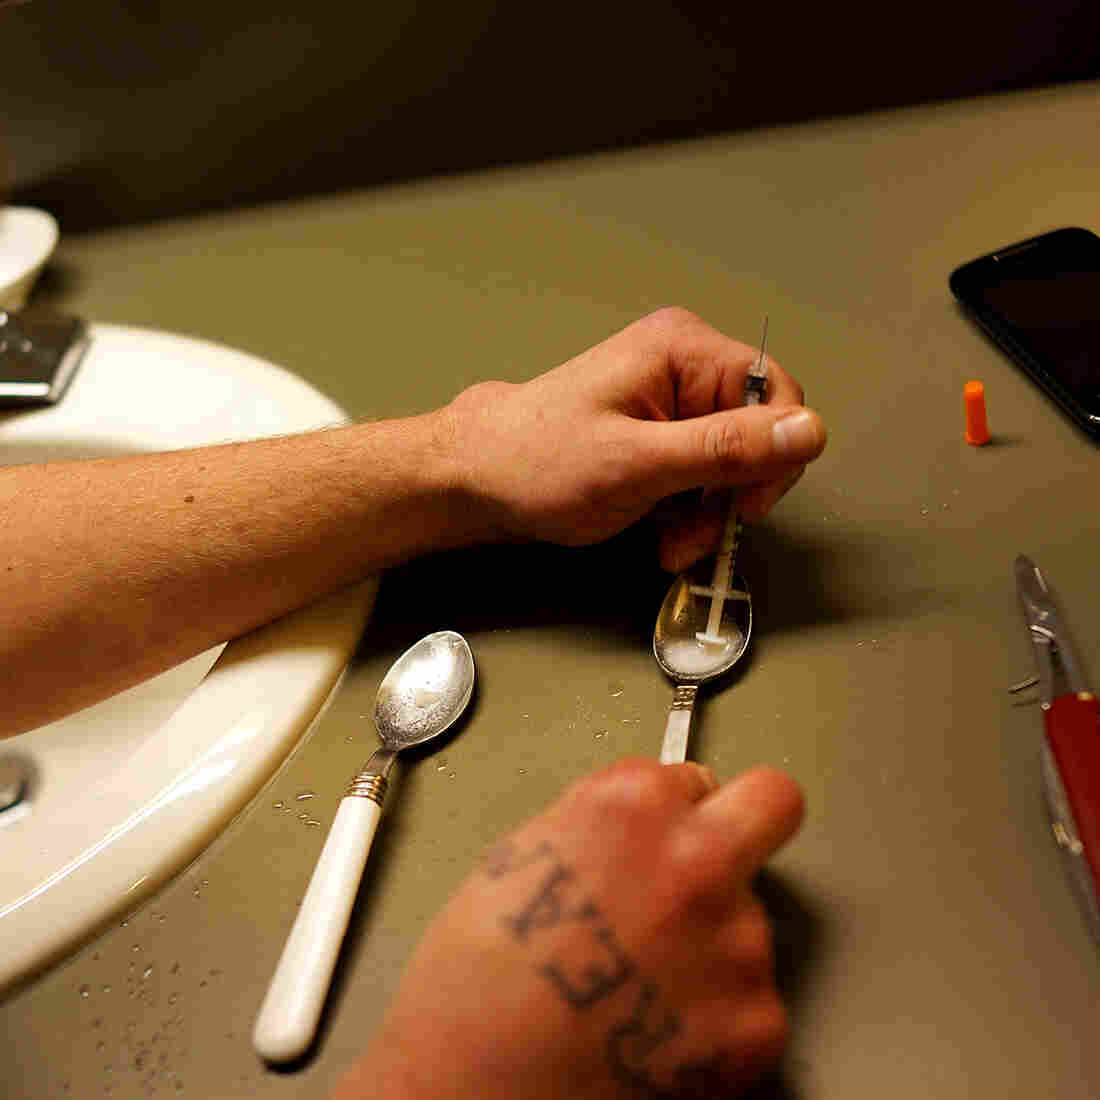 Heroin Use Surges, Especially Among Women And Whites